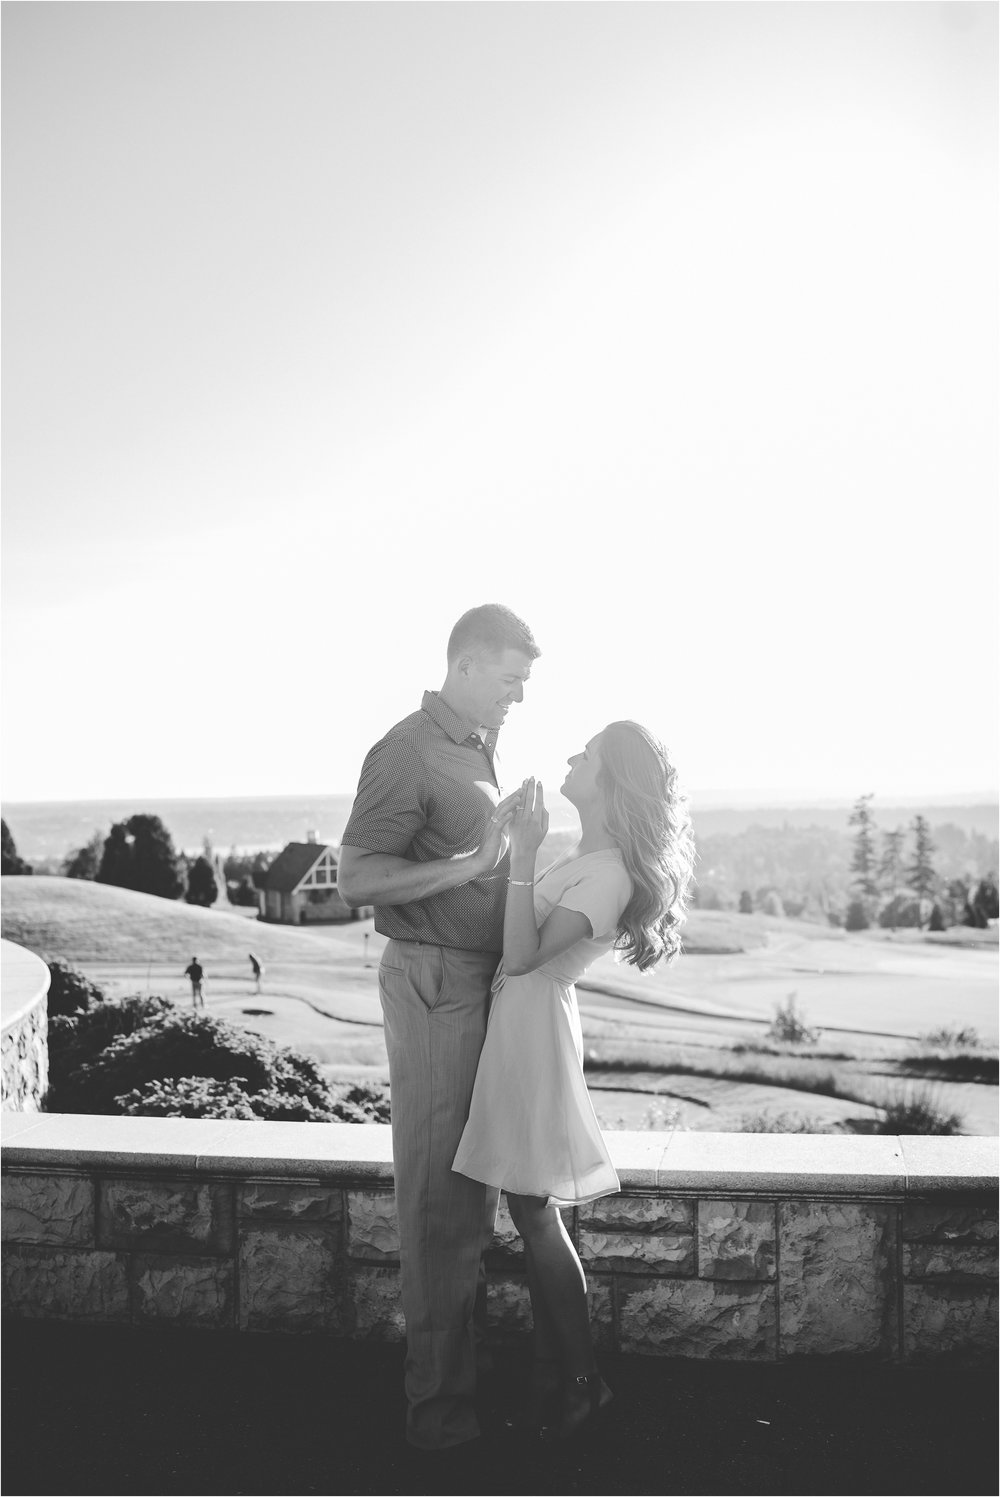 newcastle-golf-club-proposal-jannicka-mayte-seattle-washington-engagement-wedding-photographer_0032.jpg